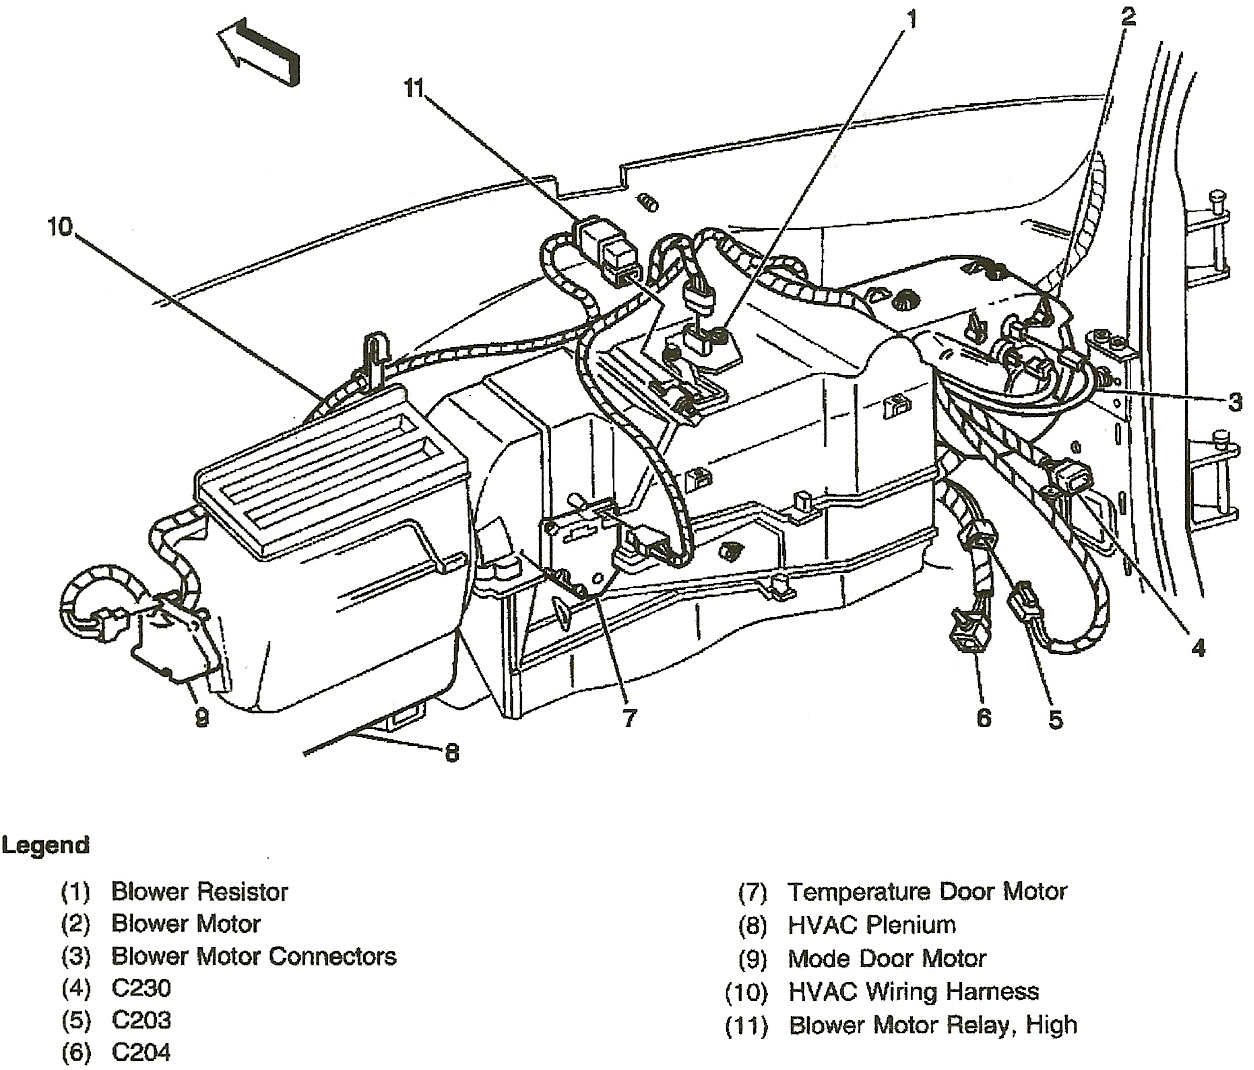 hight resolution of 2005 tahoe engine diagram wiring diagrams scematic 2005 tahoe heater core 2005 tahoe fuse diagram